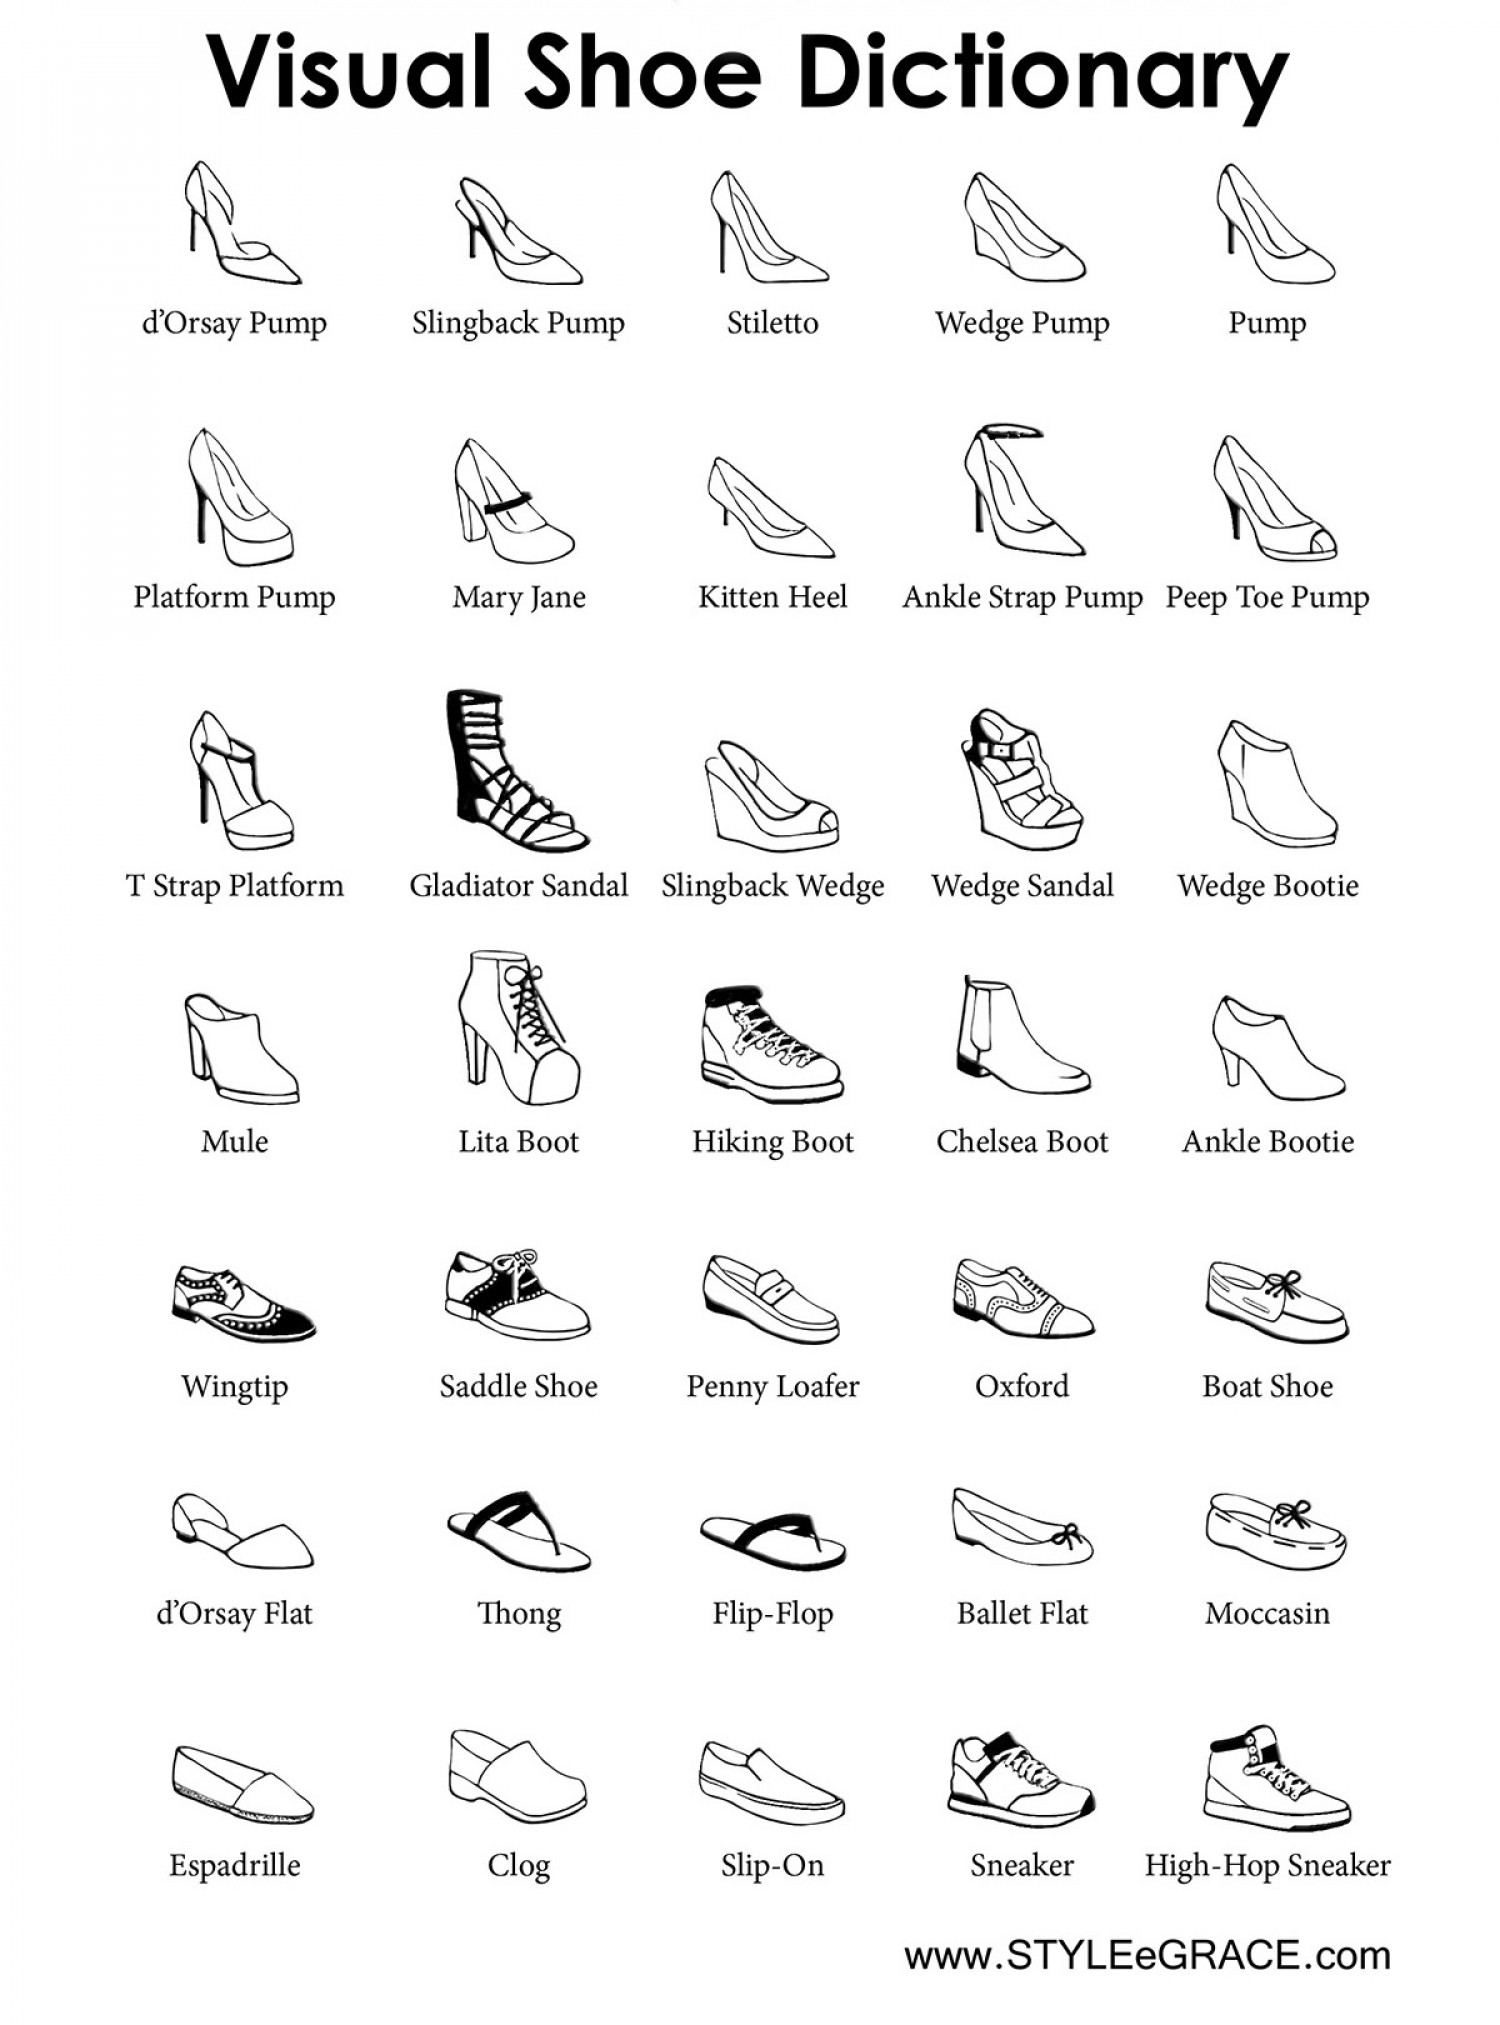 Visual Shoe Dictionary  Infographic